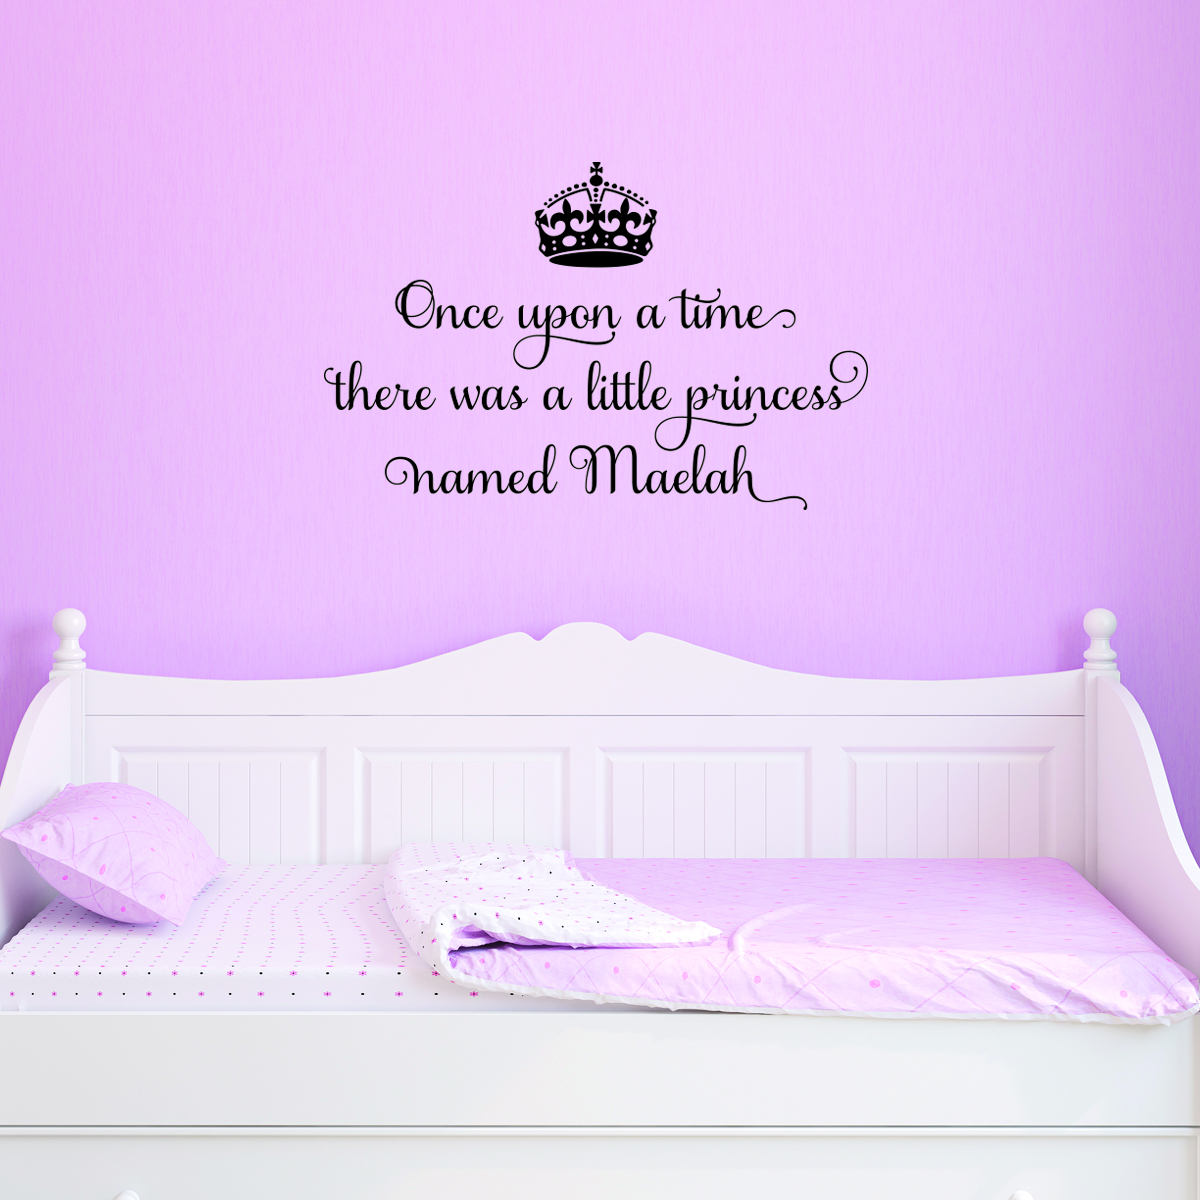 Shared Bedroom Ideas For Girls A Little Princess Named Personalized Wall Quotes Decal